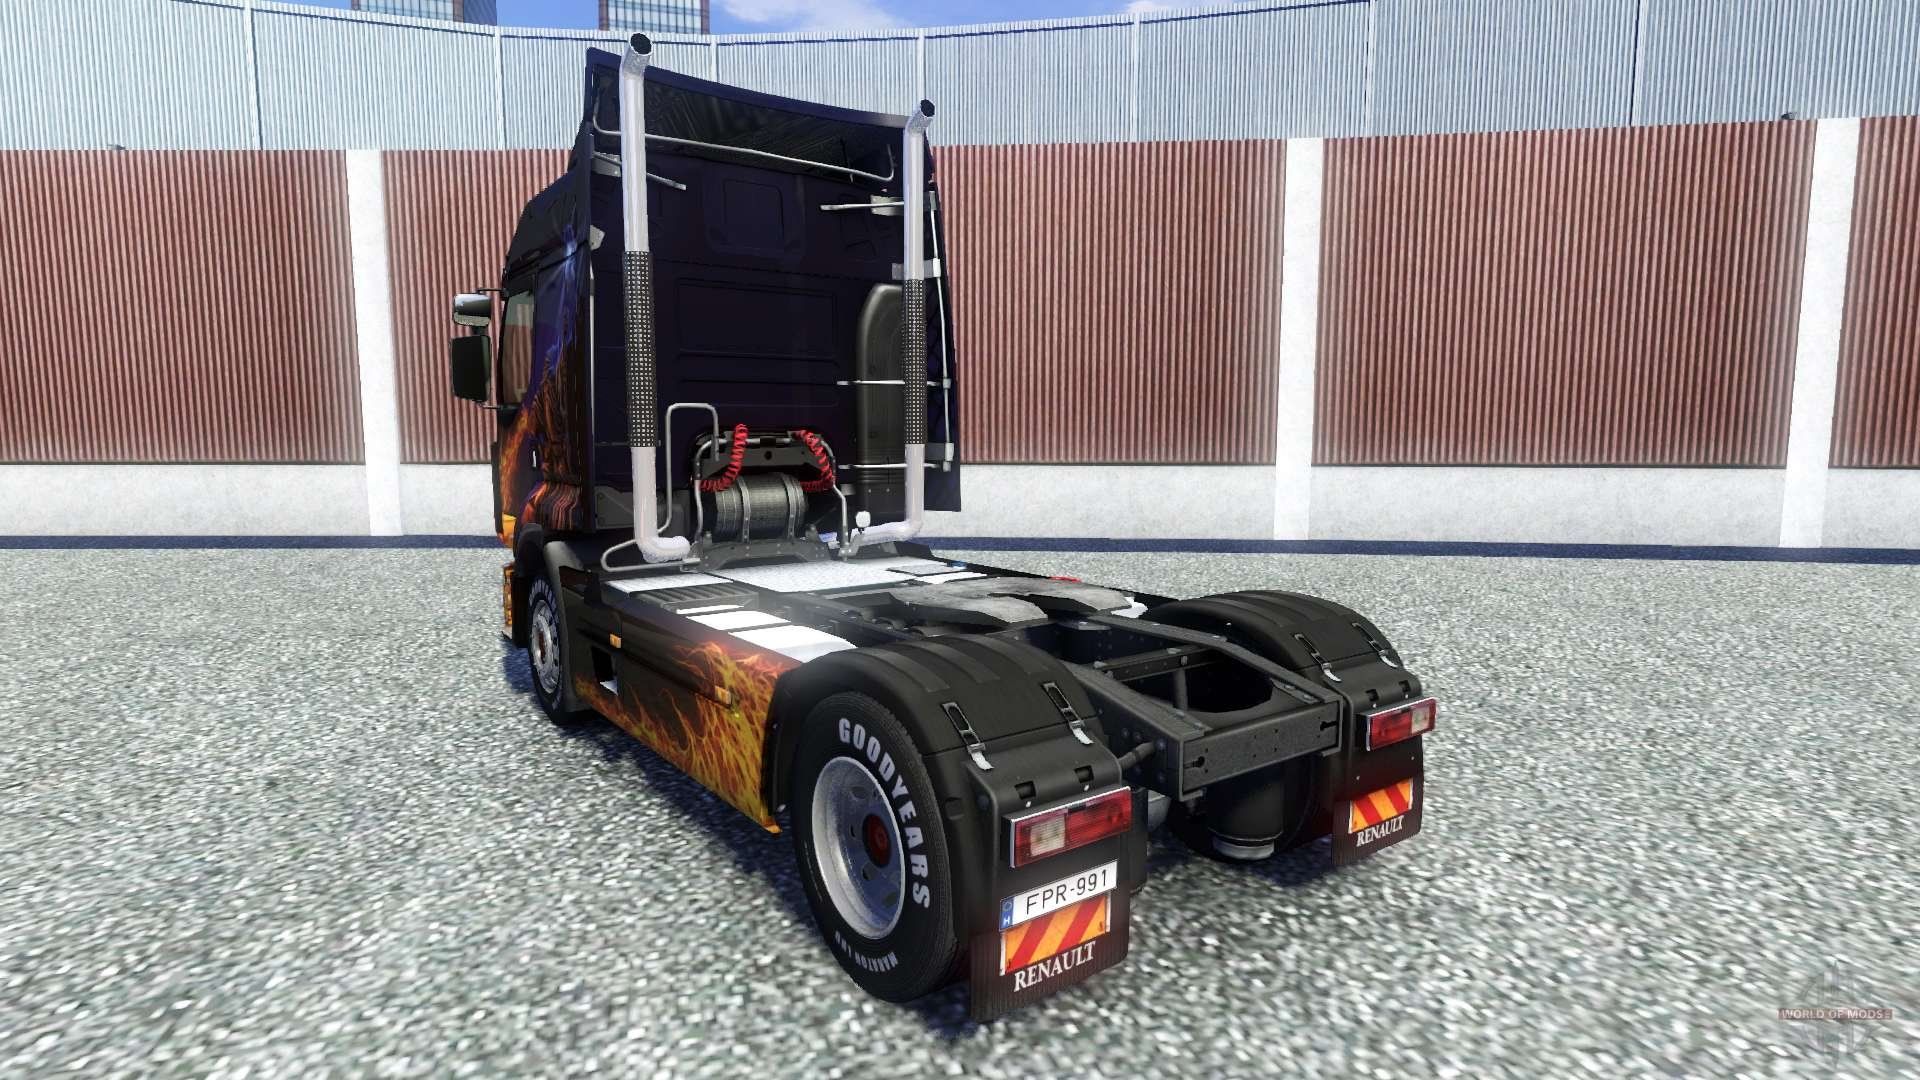 High Exhaust Pipe For Euro Truck Simulator 2